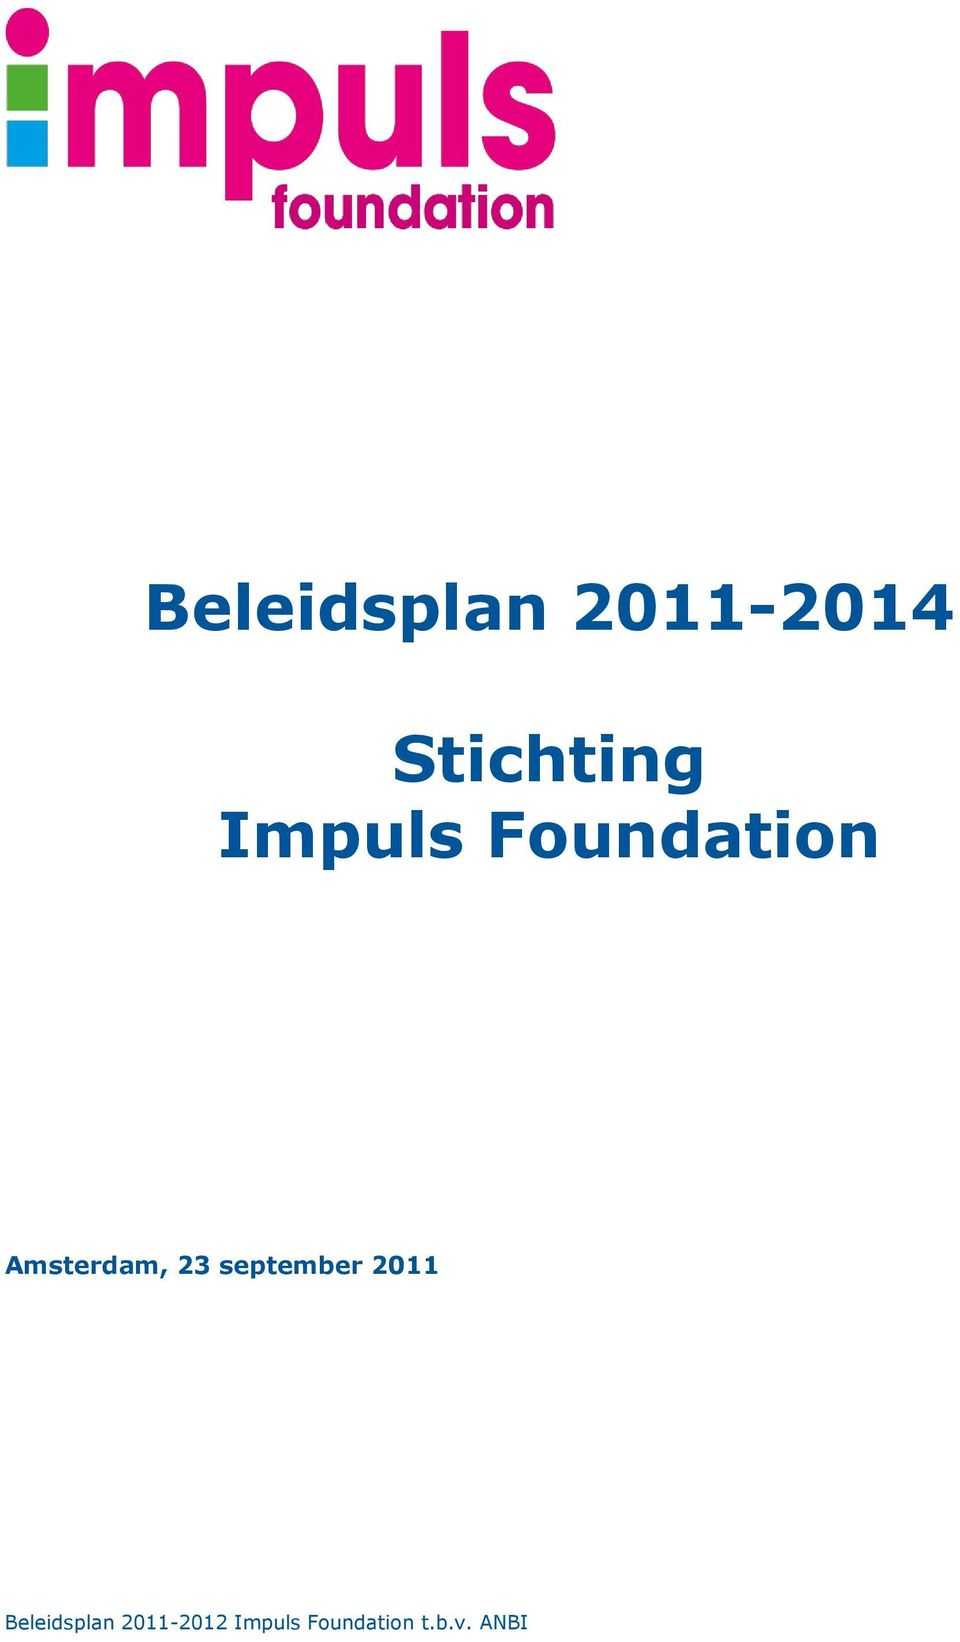 Impuls Foundation